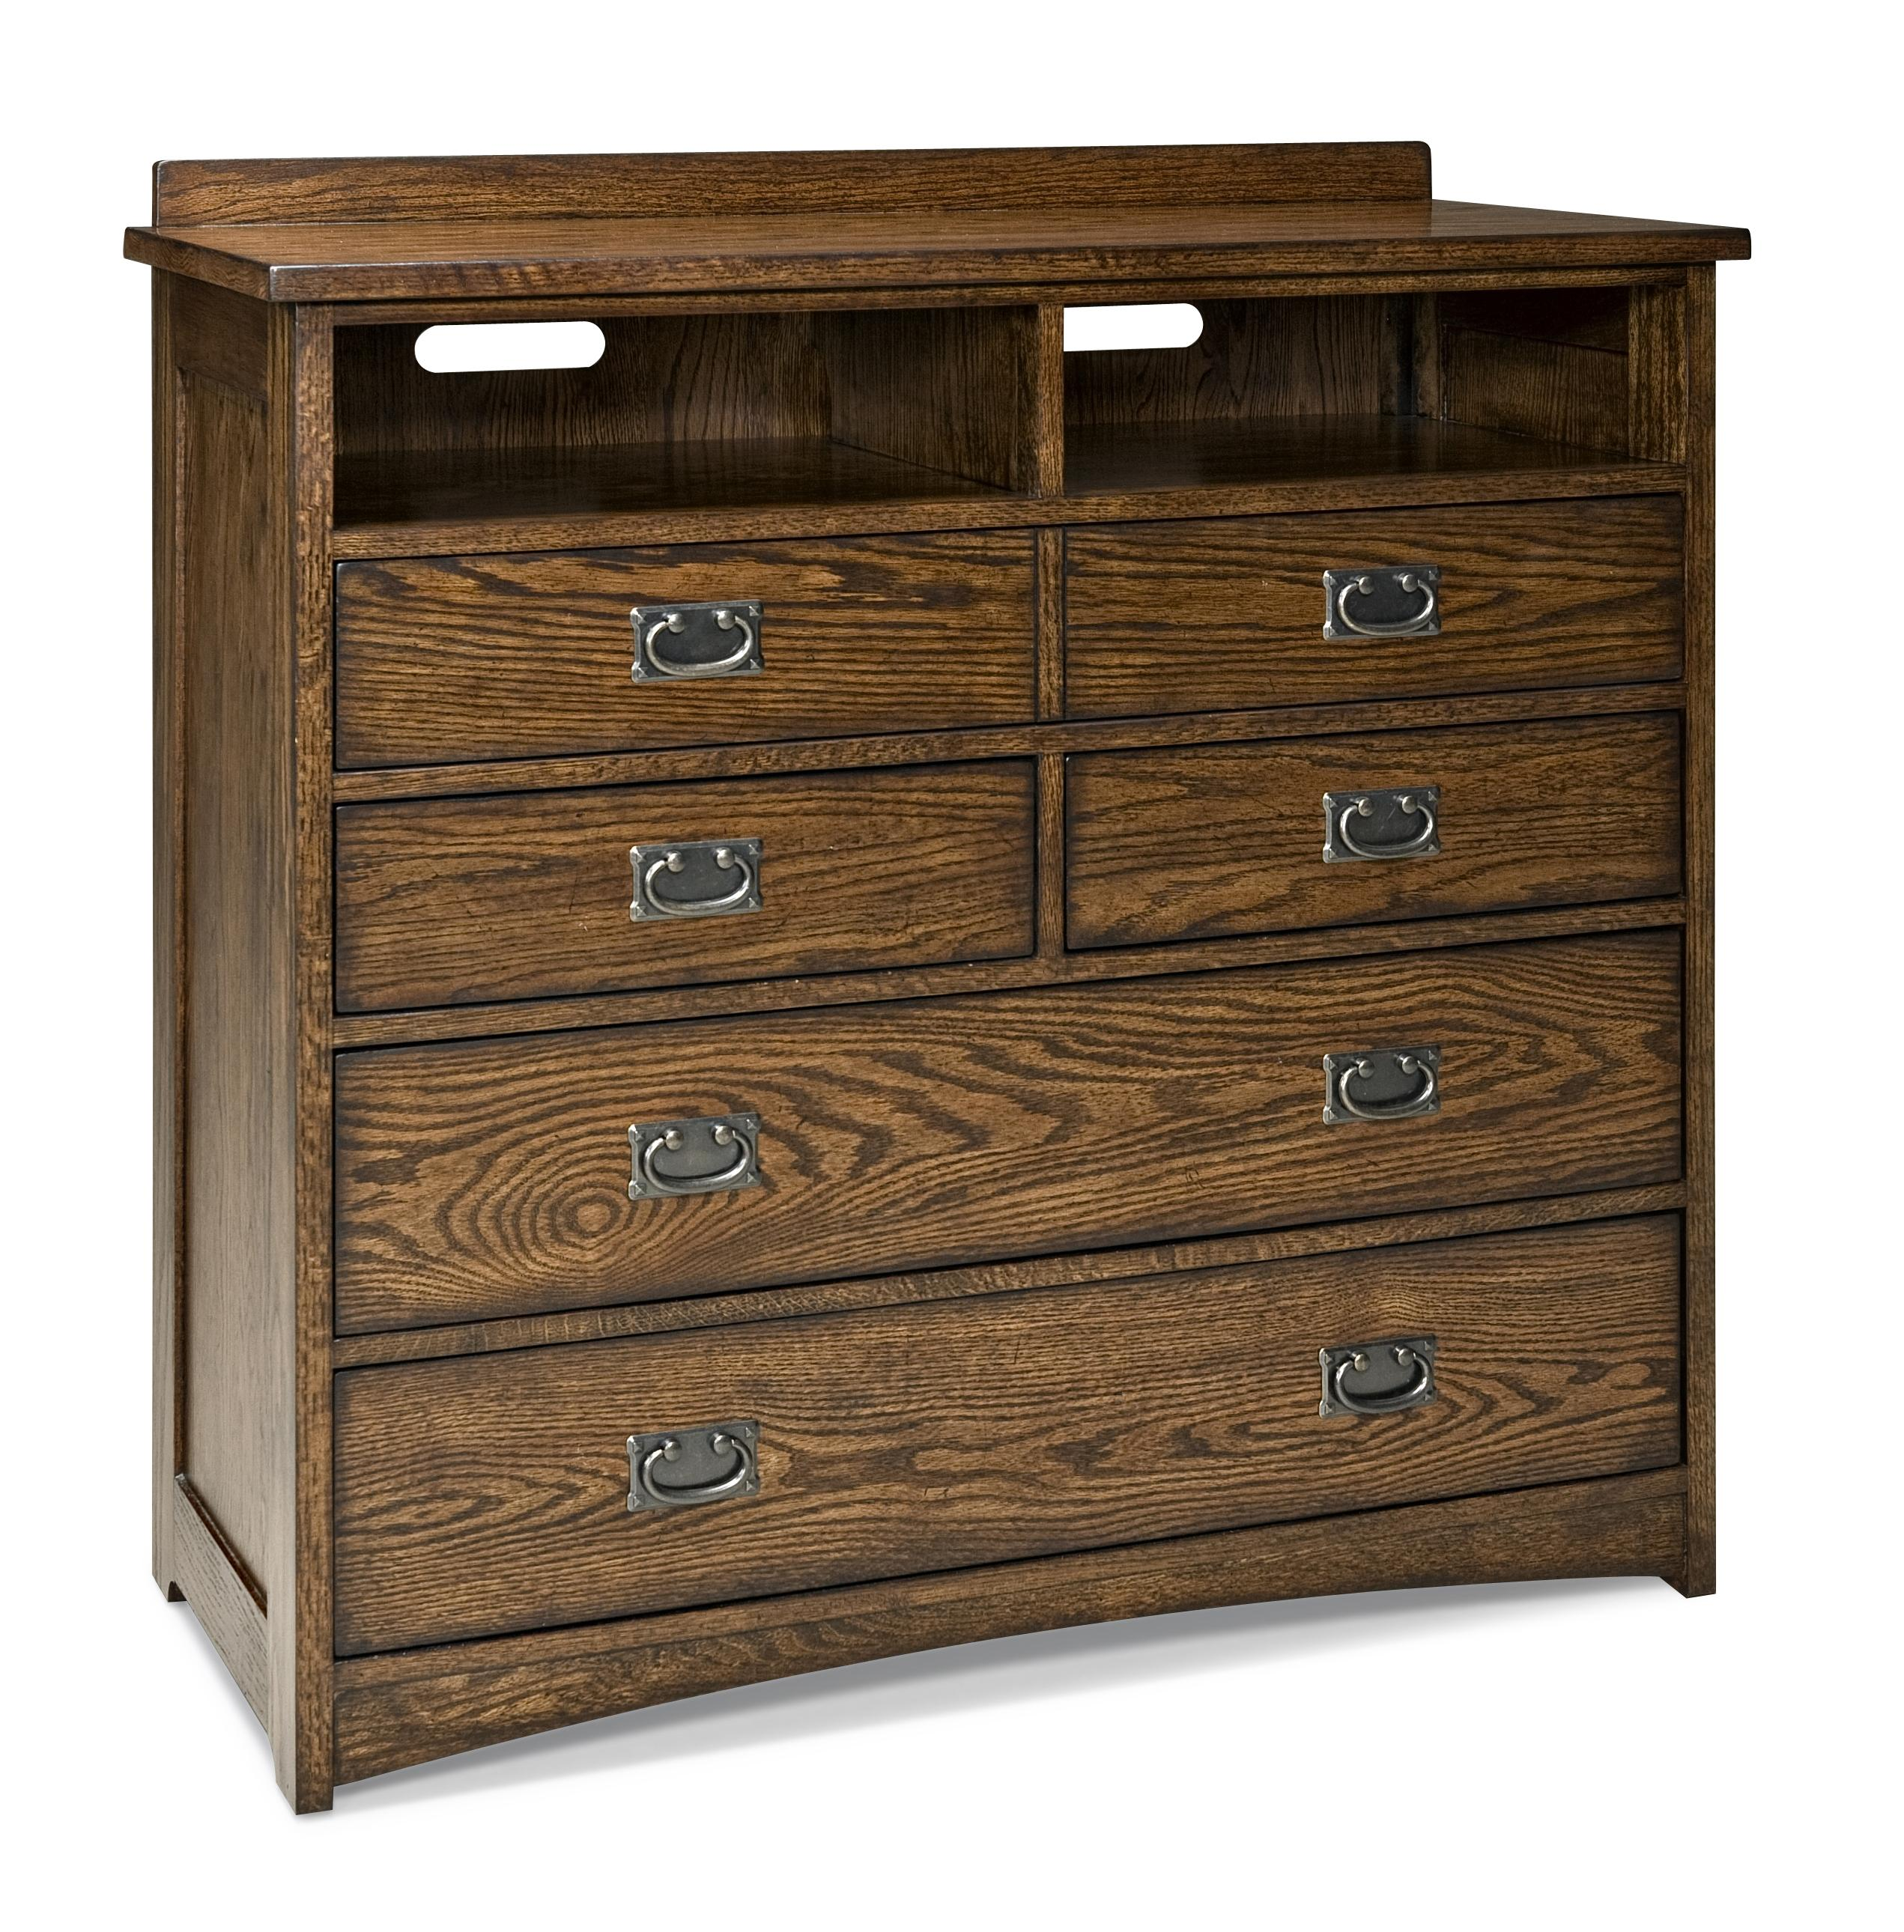 Intercon Oak Park 5-Drawer Chest - Item Number: OP-BR-5806MC-MIS-C